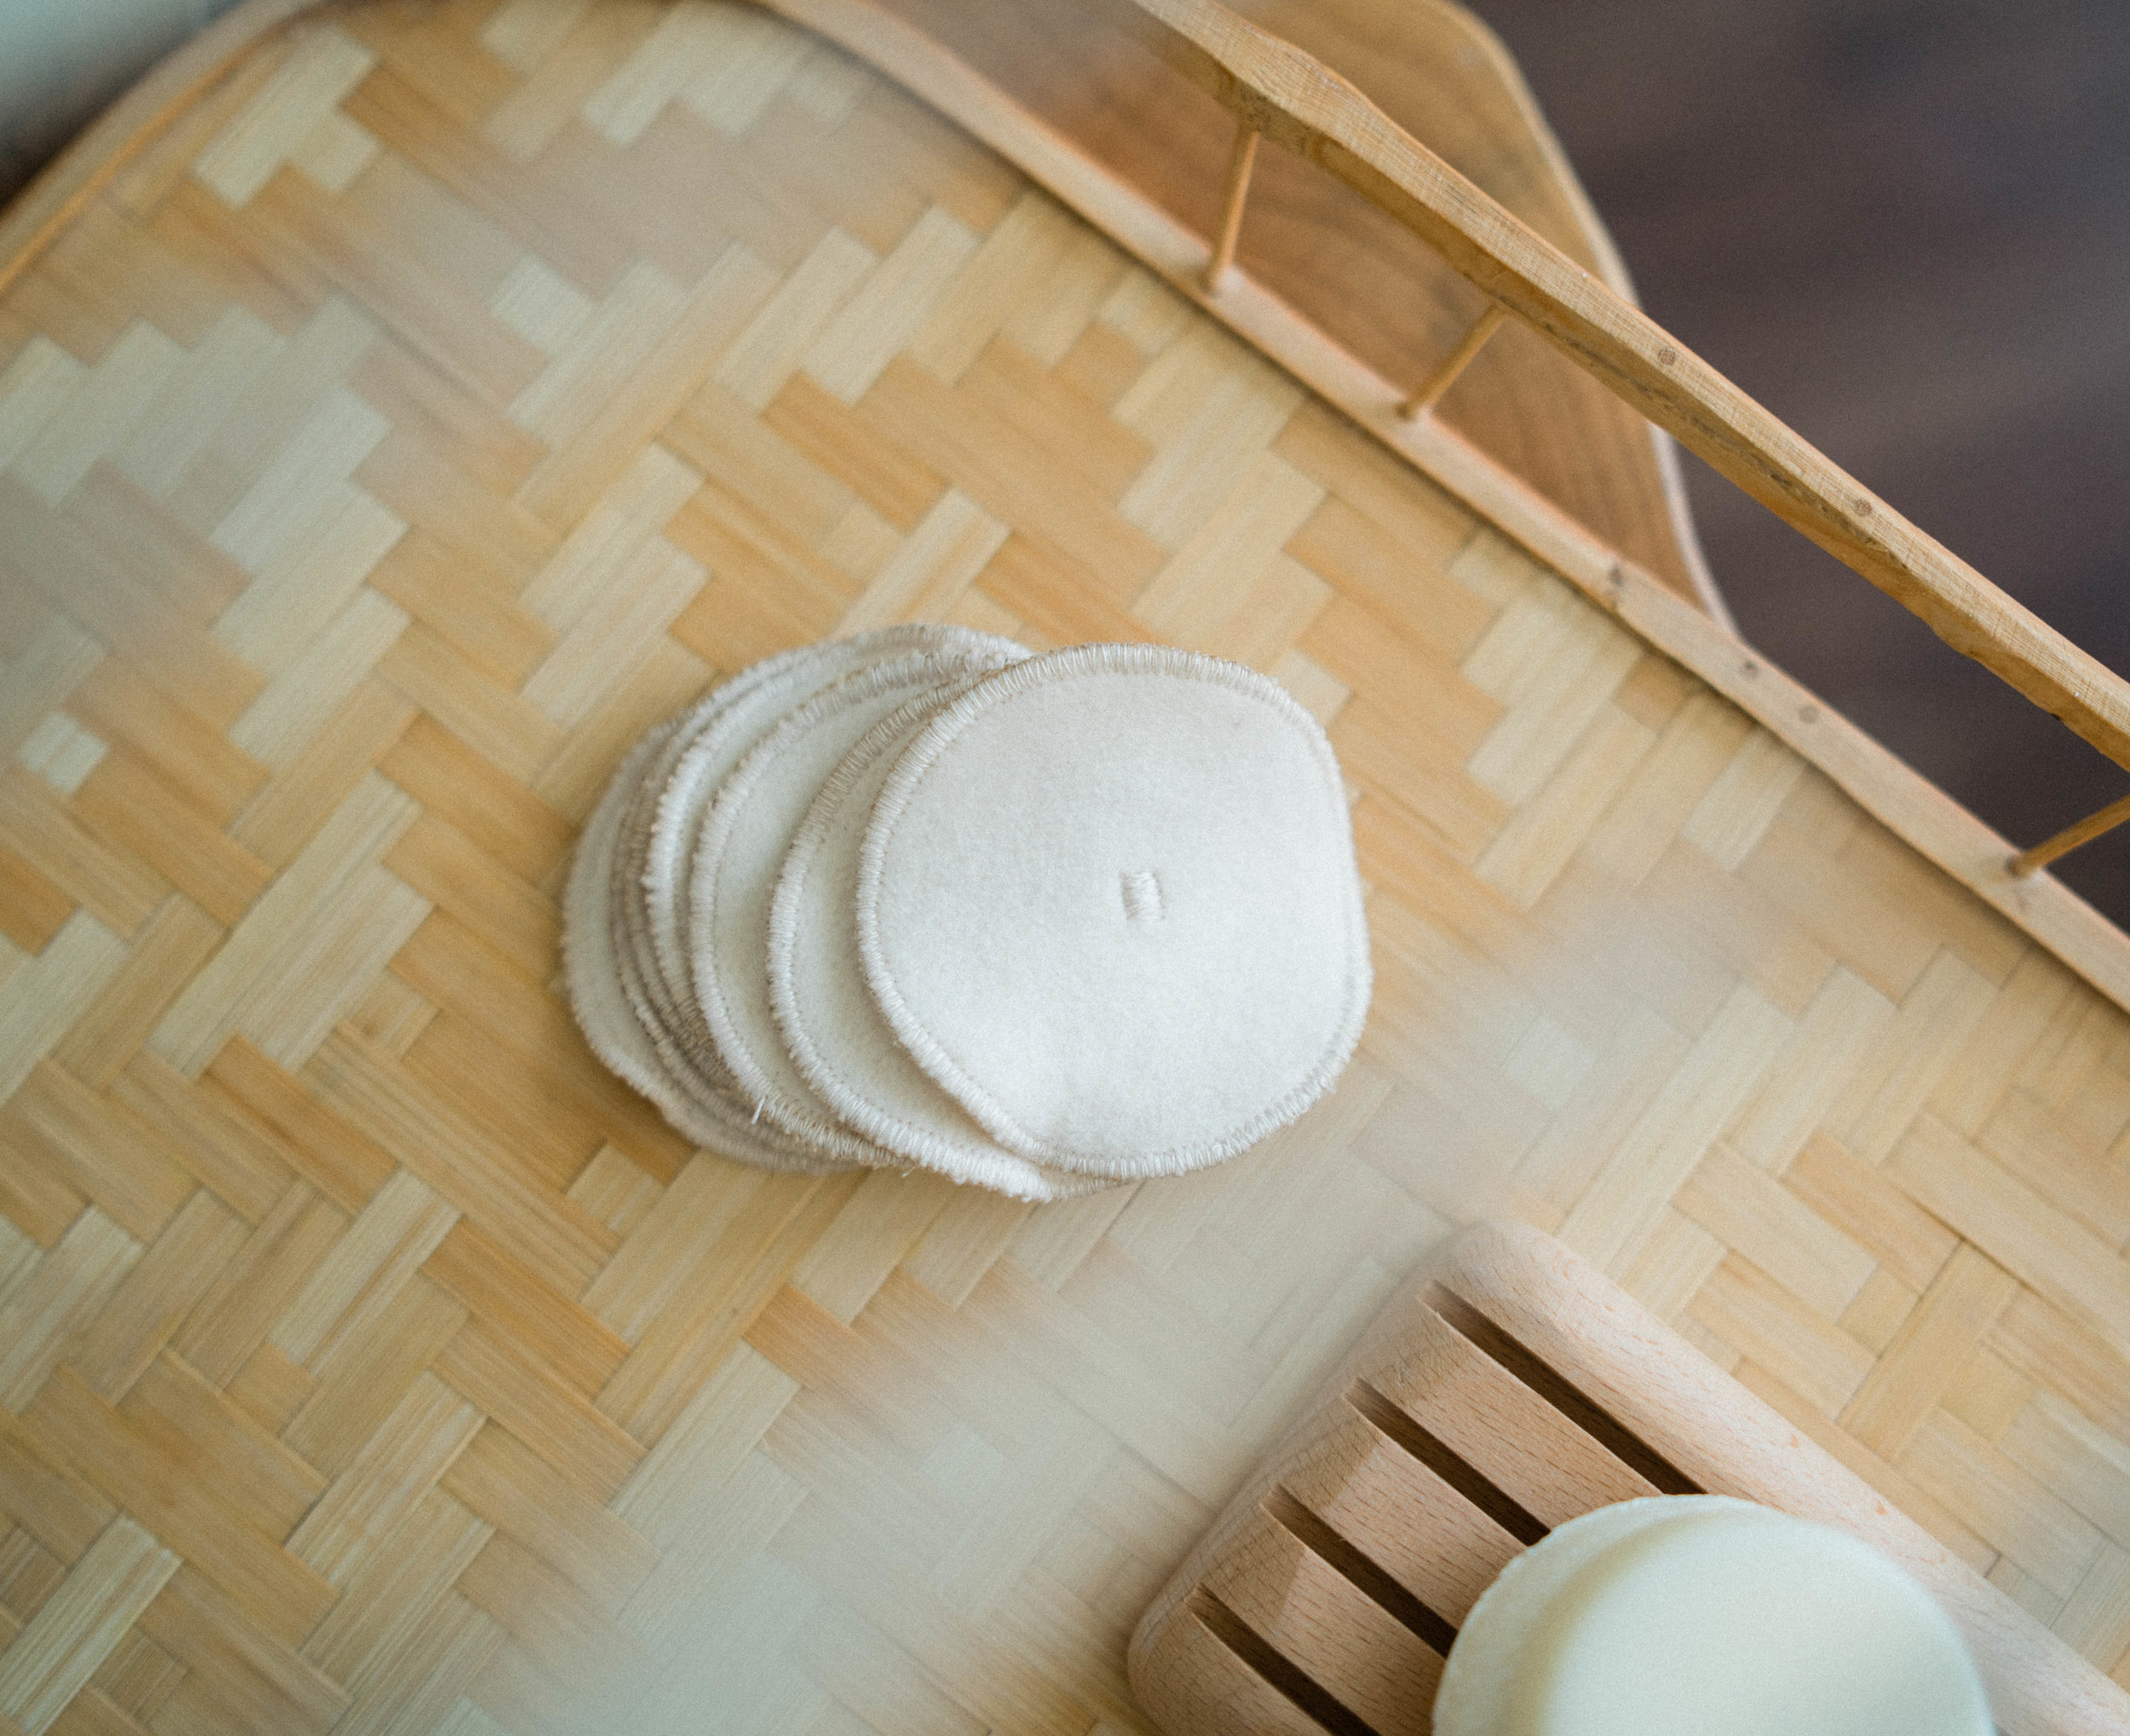 2. Bamboo Rounds and Face Cloths - When I thought about making my bathroom routine low-waste, I thought the hardest thing to change was not using cotton pads and cotton swabs.I actually LOVE using these instead of regular cotton pads! They don't leave any residue on my face, and they're incredibly soft after a couple of washes.Tip: My solution to cotton swabs was using the edges of these bamboo rounds to clean up any mascara on my eye lids. To clean my ears, I use a metal ear cleaner.These organic bamboo rounds were purchased from Unwrapped Life.